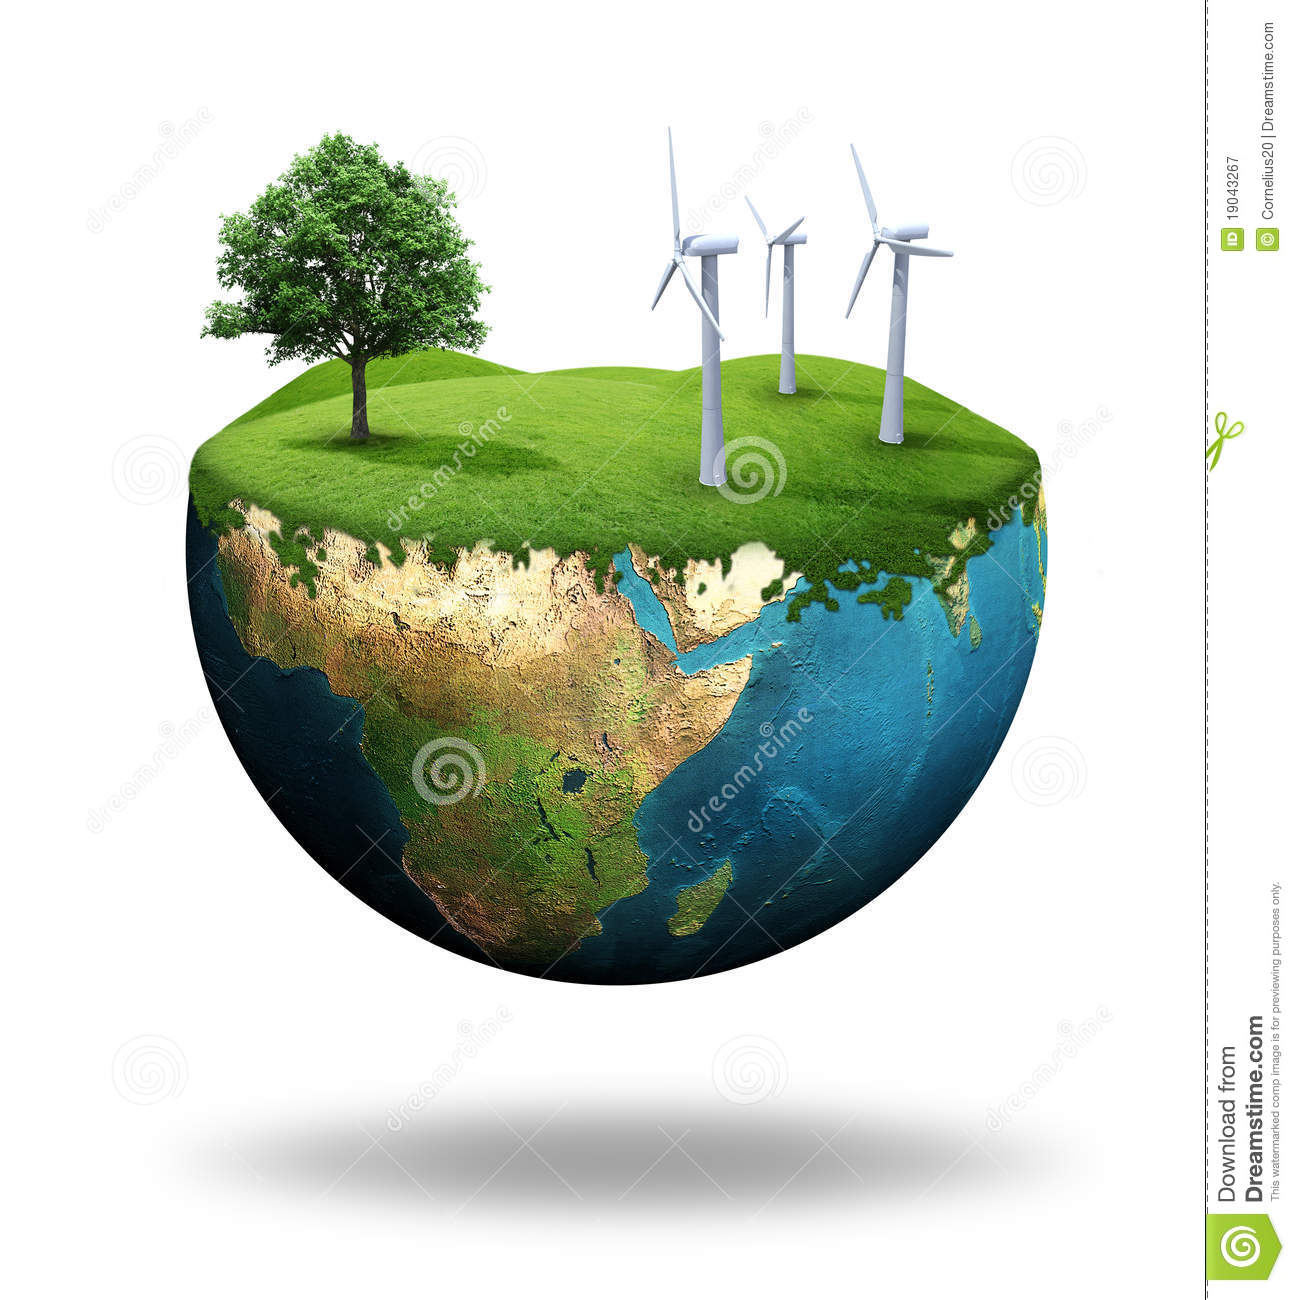 Green Earth Royalty Free Stock Photography - Image: 19043267